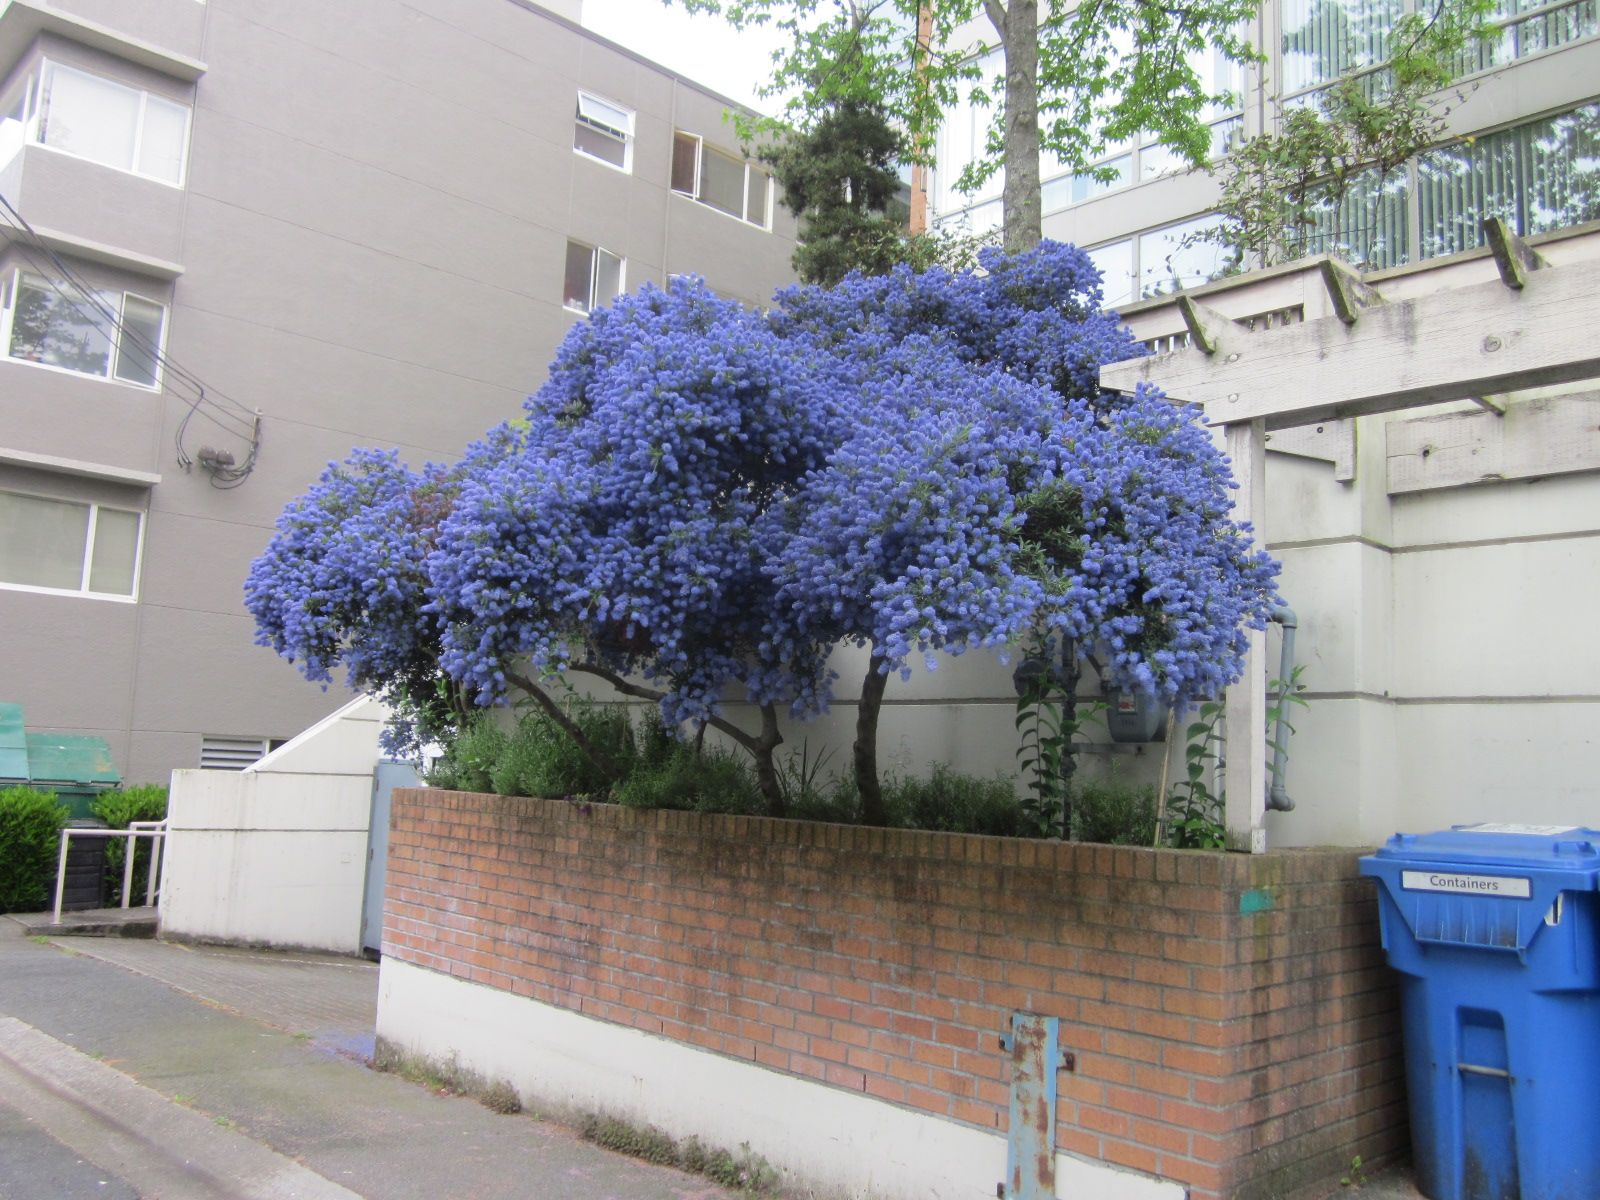 Ceanothus is an evergreen shrub or small tree with many clusters of ceanothus is an evergreen shrub or small tree with many clusters of small blue flower clumps in spring and summer bees east border on retainin wall izmirmasajfo